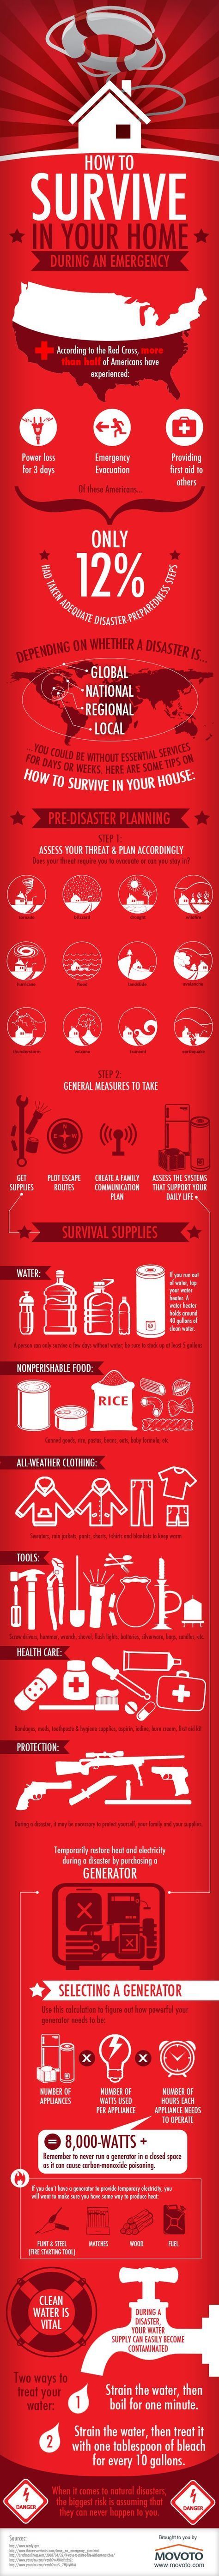 How prepared are you? According to studies only 10 percent of Americans are prepared for a natural disaster. More frightening, there are on average 50 natural disaster across the country each year. Whether it's an earthquake, tornado, or flood you should be prepared. Below is Movoto's guide on how to survive in your home during an emergency.